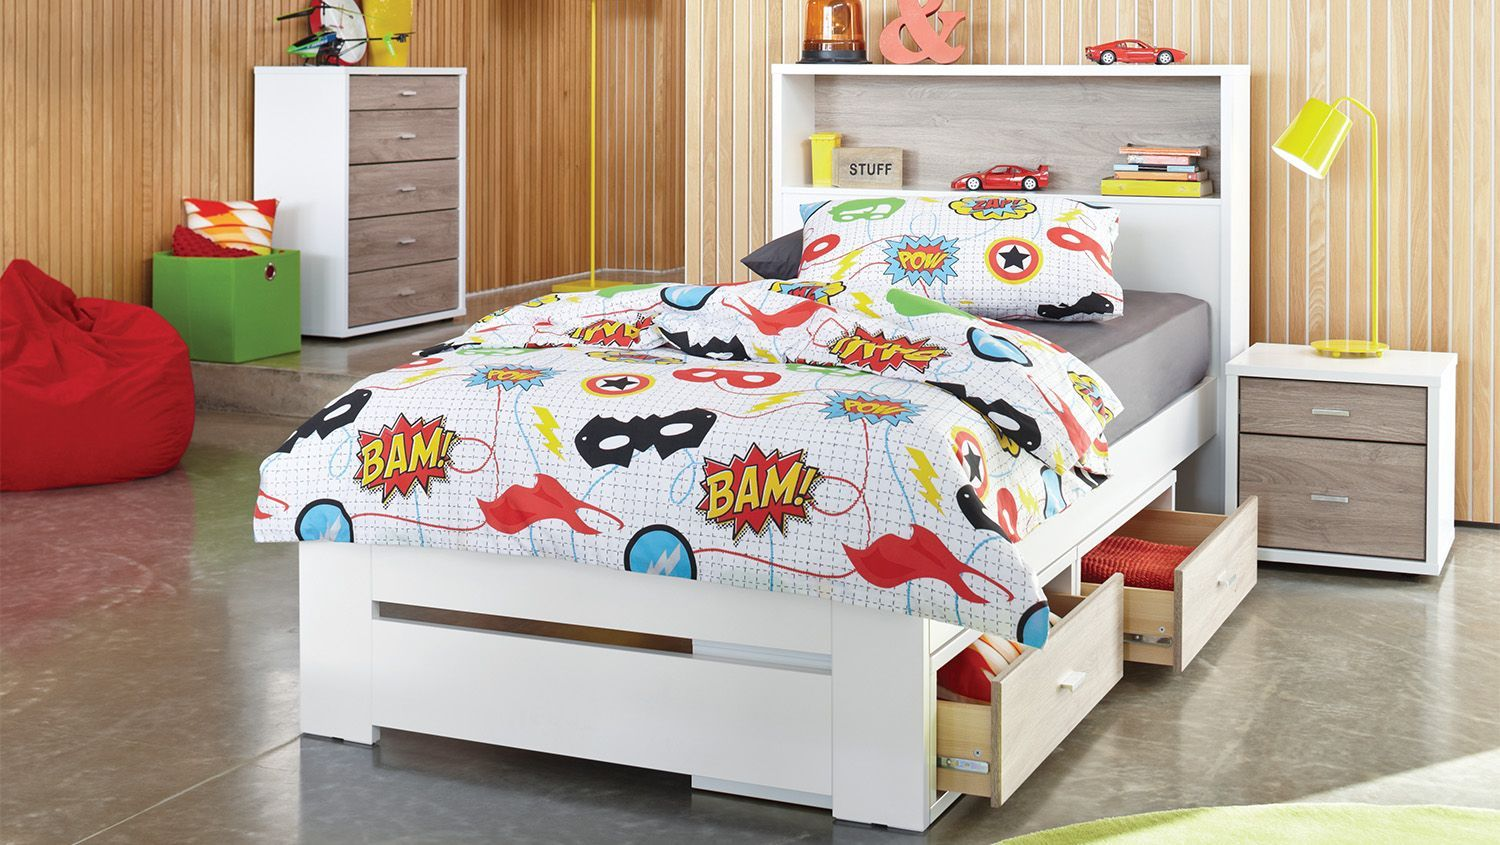 How To Create A Playful Yet Practical Paradise For Your Little One